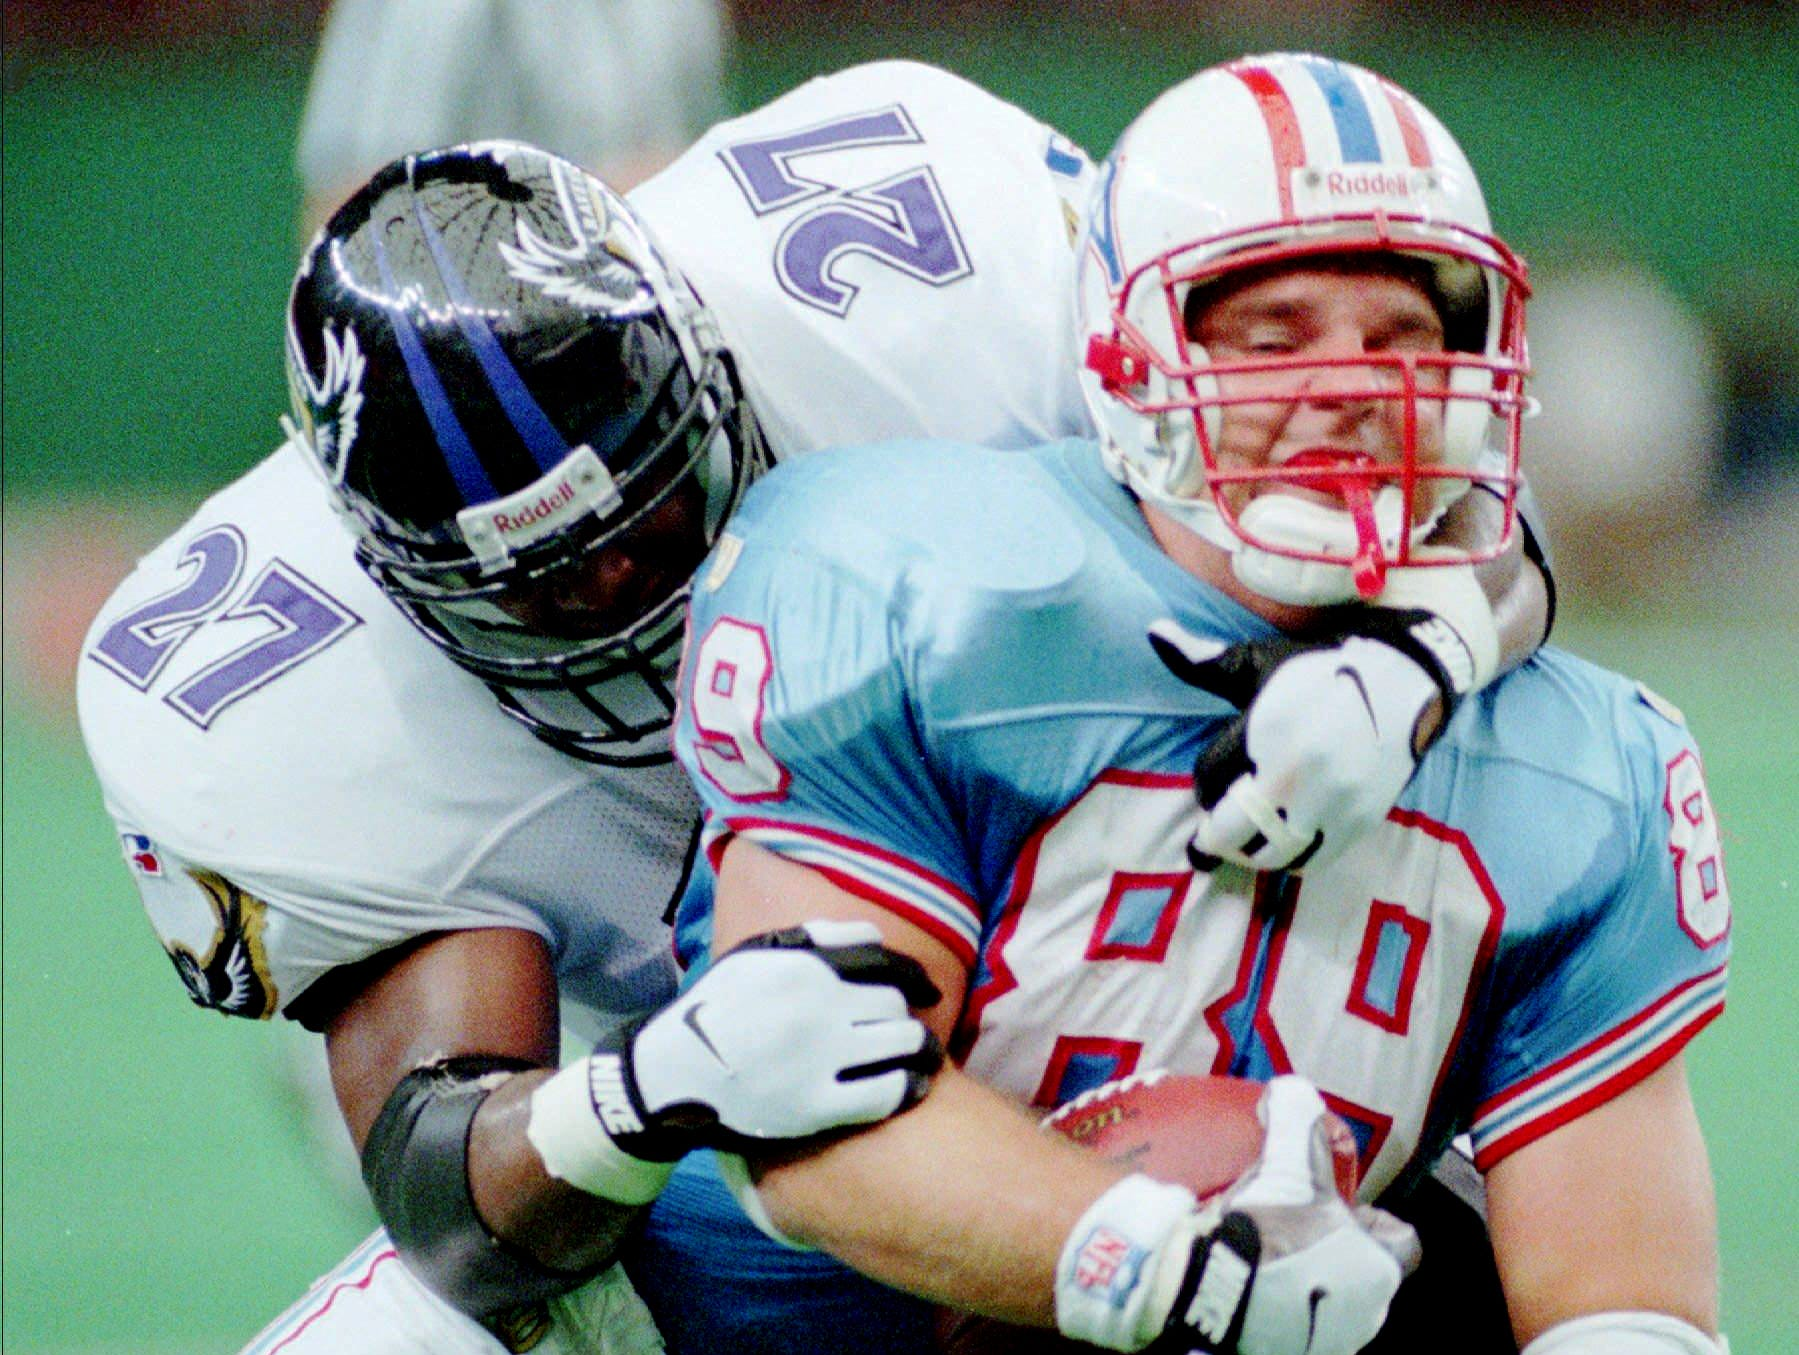 Houston Oilers tight end Frank Wycheck (89) is tackles by Baltimore Ravens defender Stevon Moore (27) after catching a pass for a gain of five yards during the second quarter Sept. 15, 1996 in Houston. Wycheck caught six passes for 64 yards and one touchdown in the Oilers 29-13 win over the Ravens.